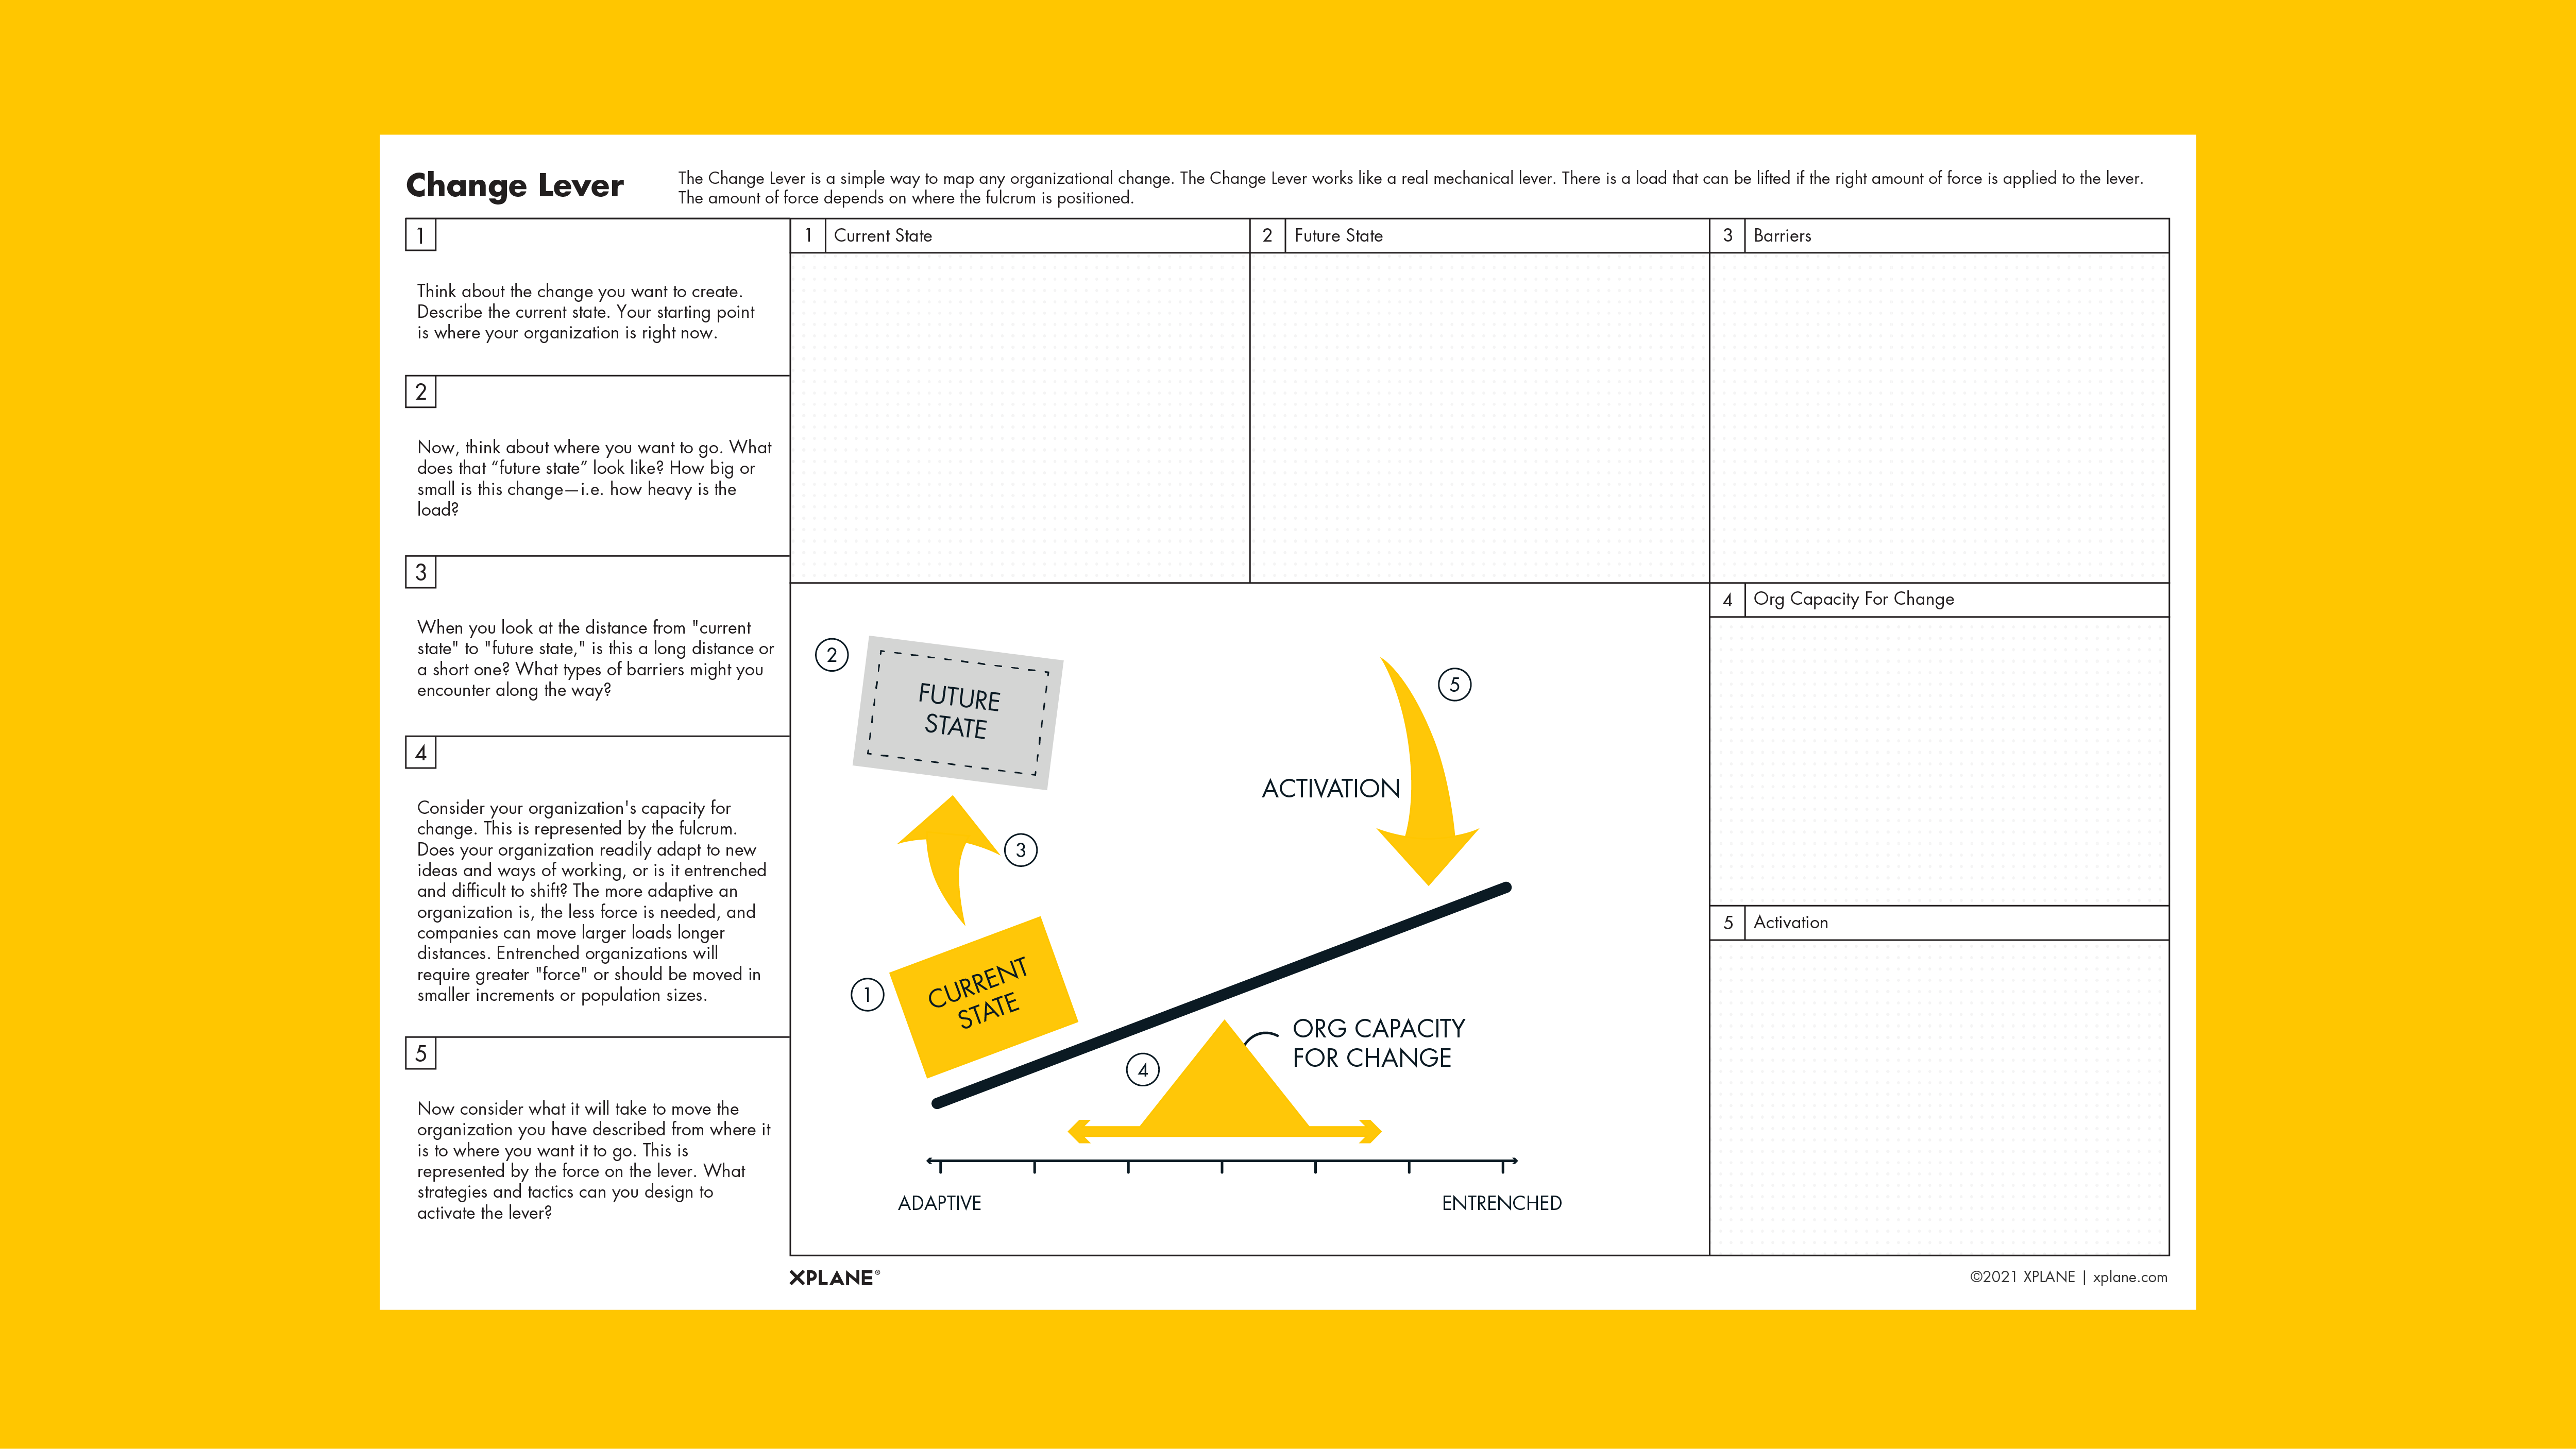 Change Lever worksheet against yellow background